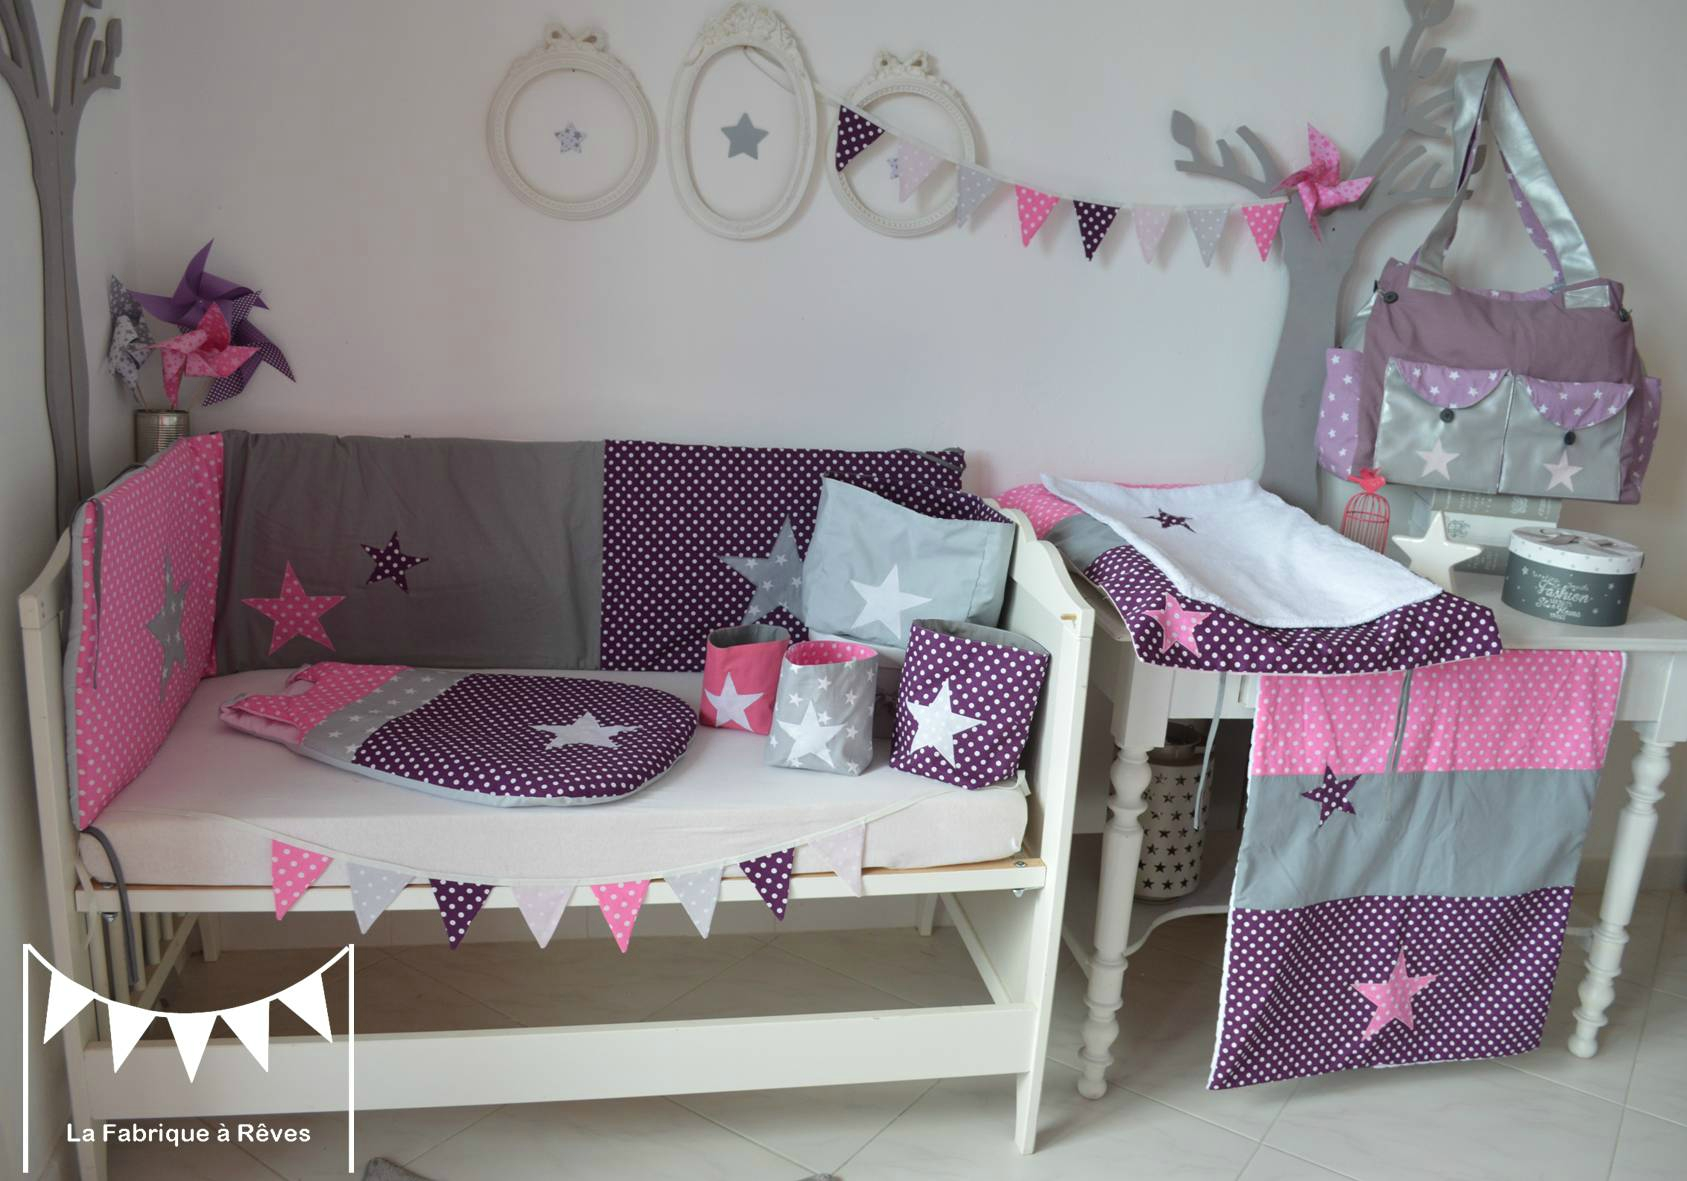 D coration chambre b b fille blanc violet rose vif gris pois toiles photo de 0 dispo de - Photo chambre bebe fille ...